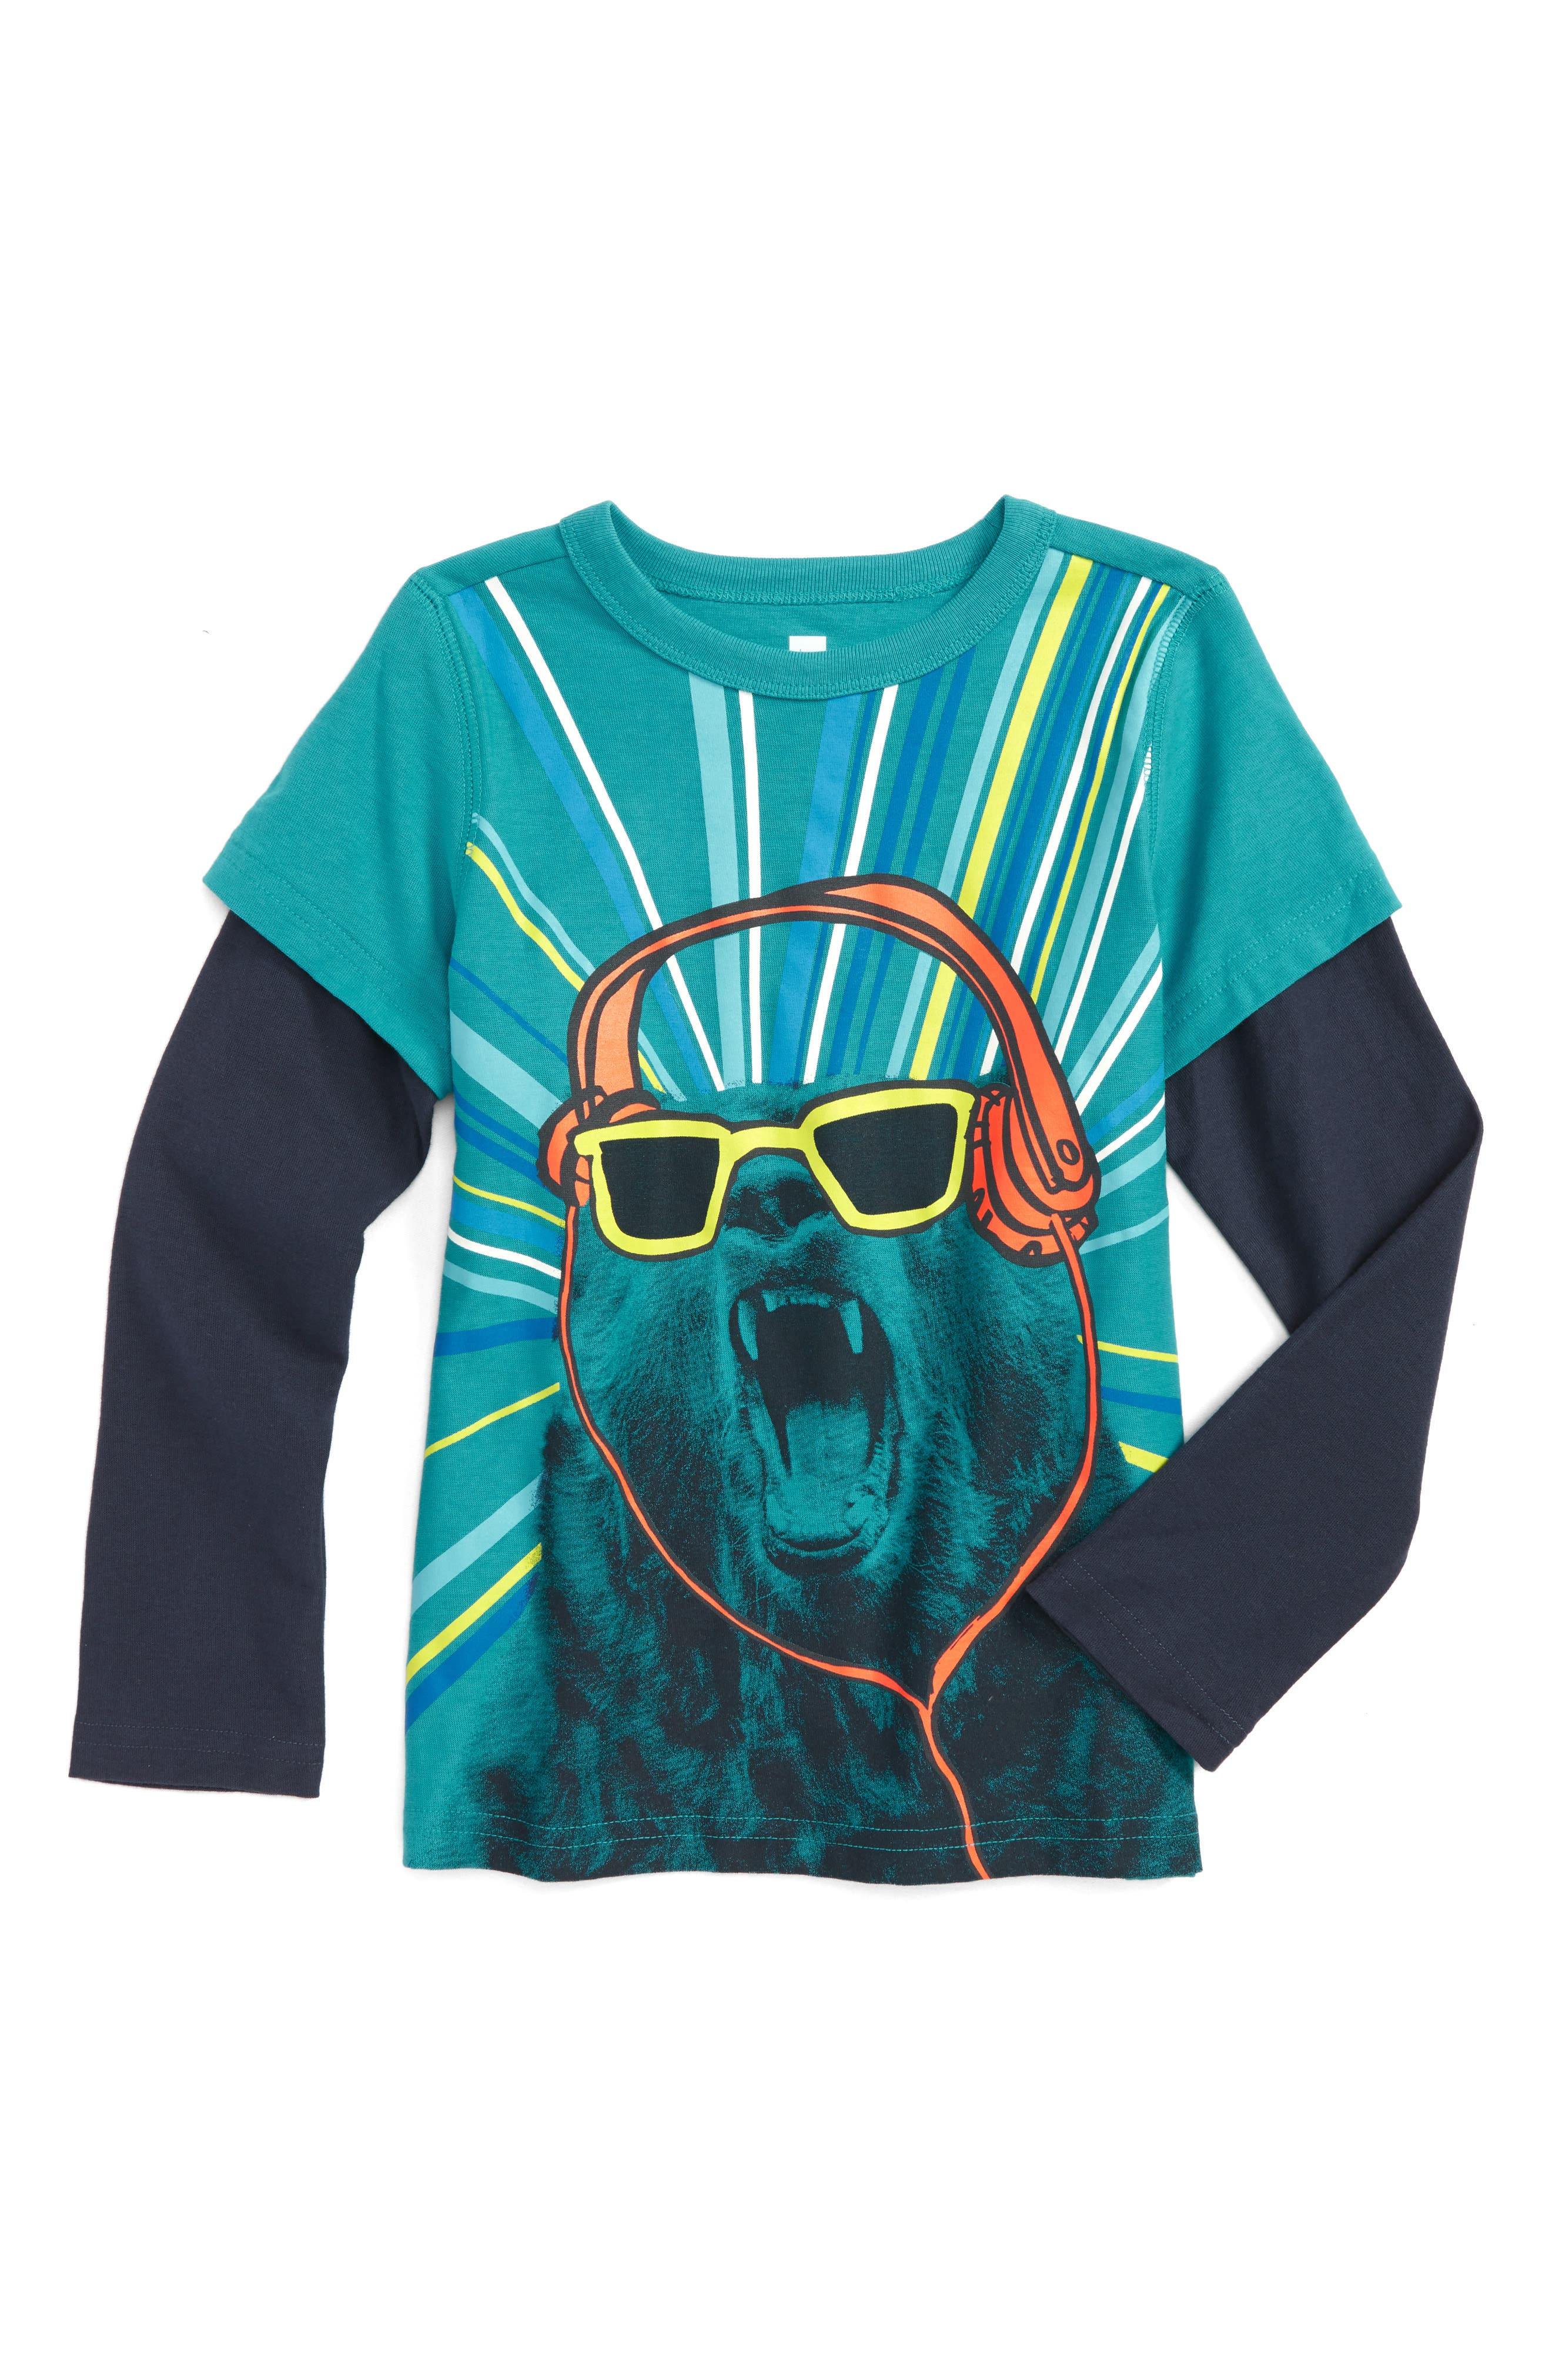 Bear With Me Graphic T-Shirt,                             Main thumbnail 1, color,                             Pool